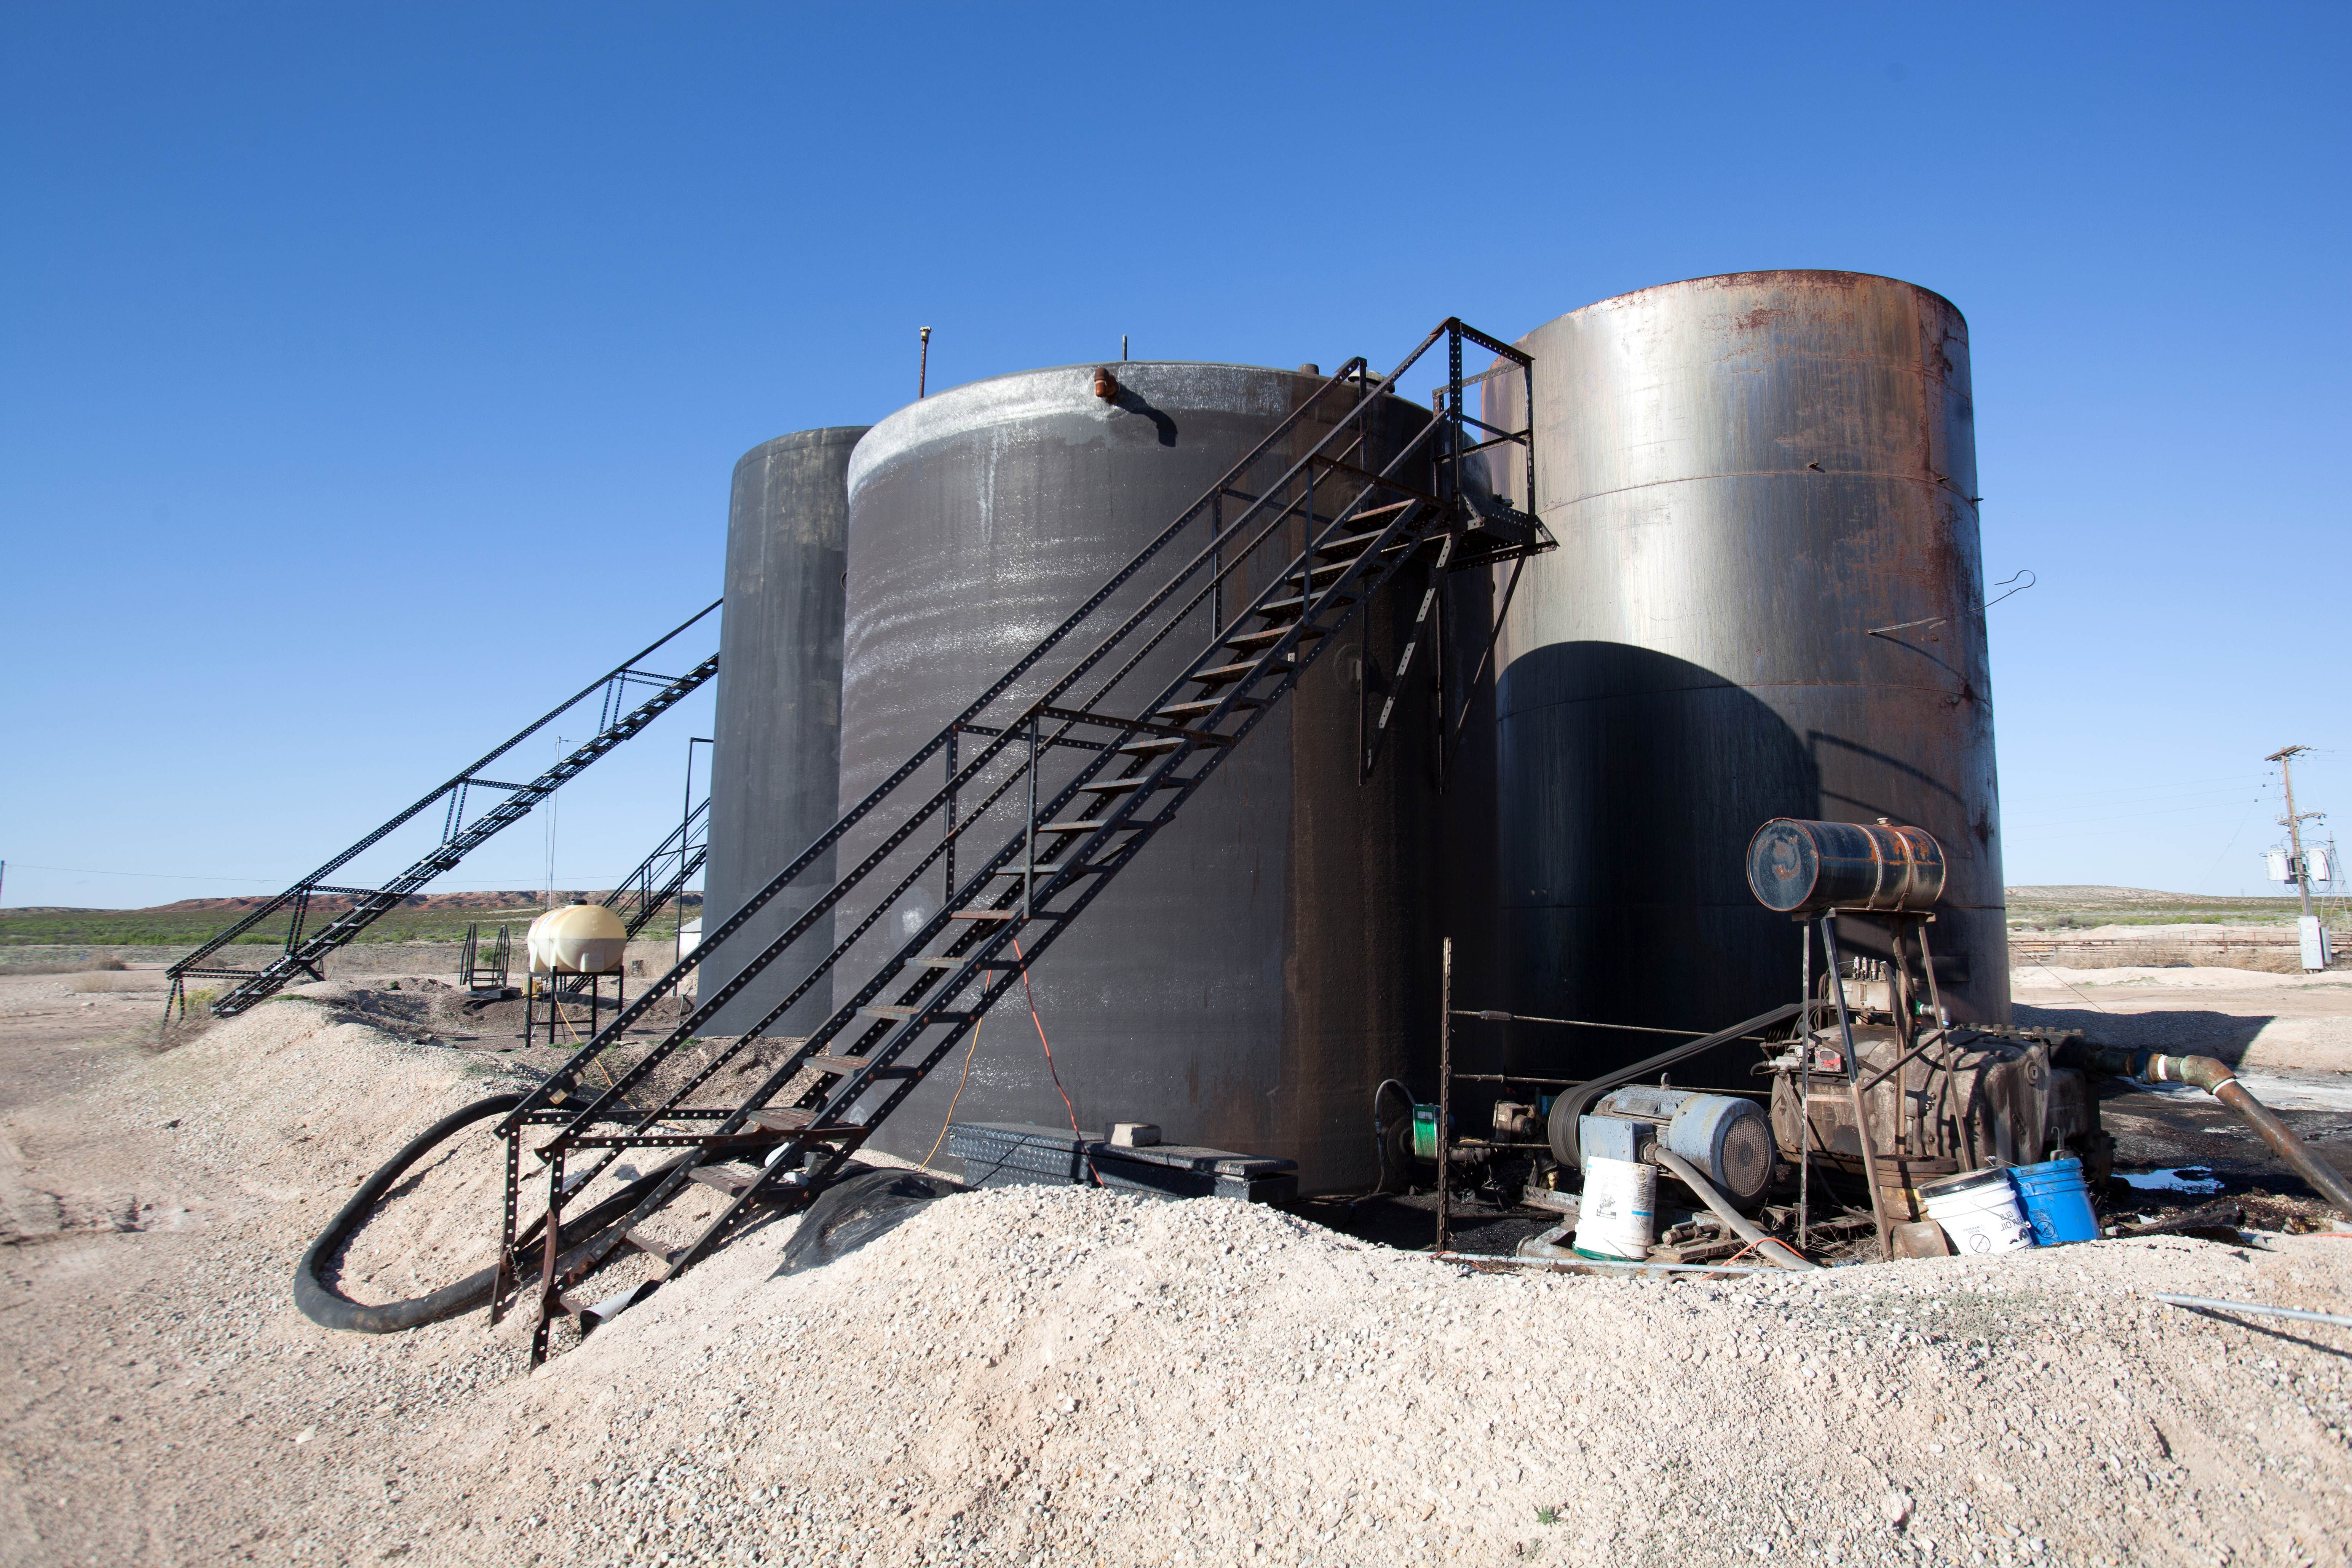 Free photograph; oil, tanks, desert, facory, production, processing, facilities